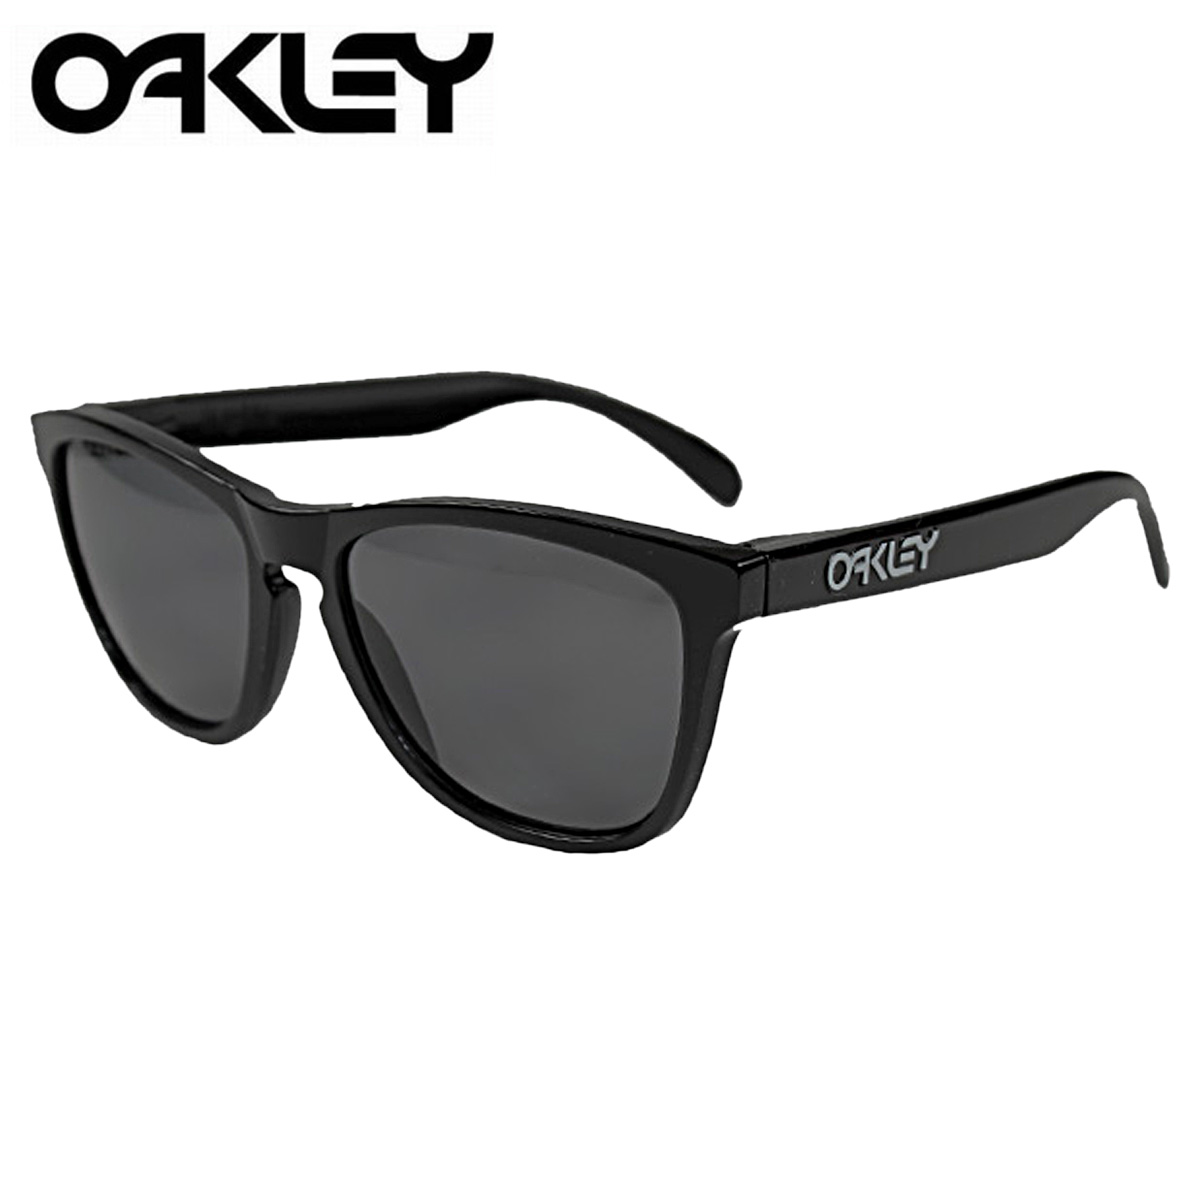 oakley sunglasses names  03 223 sunglasses oakley oakley frogskins frog skin men women